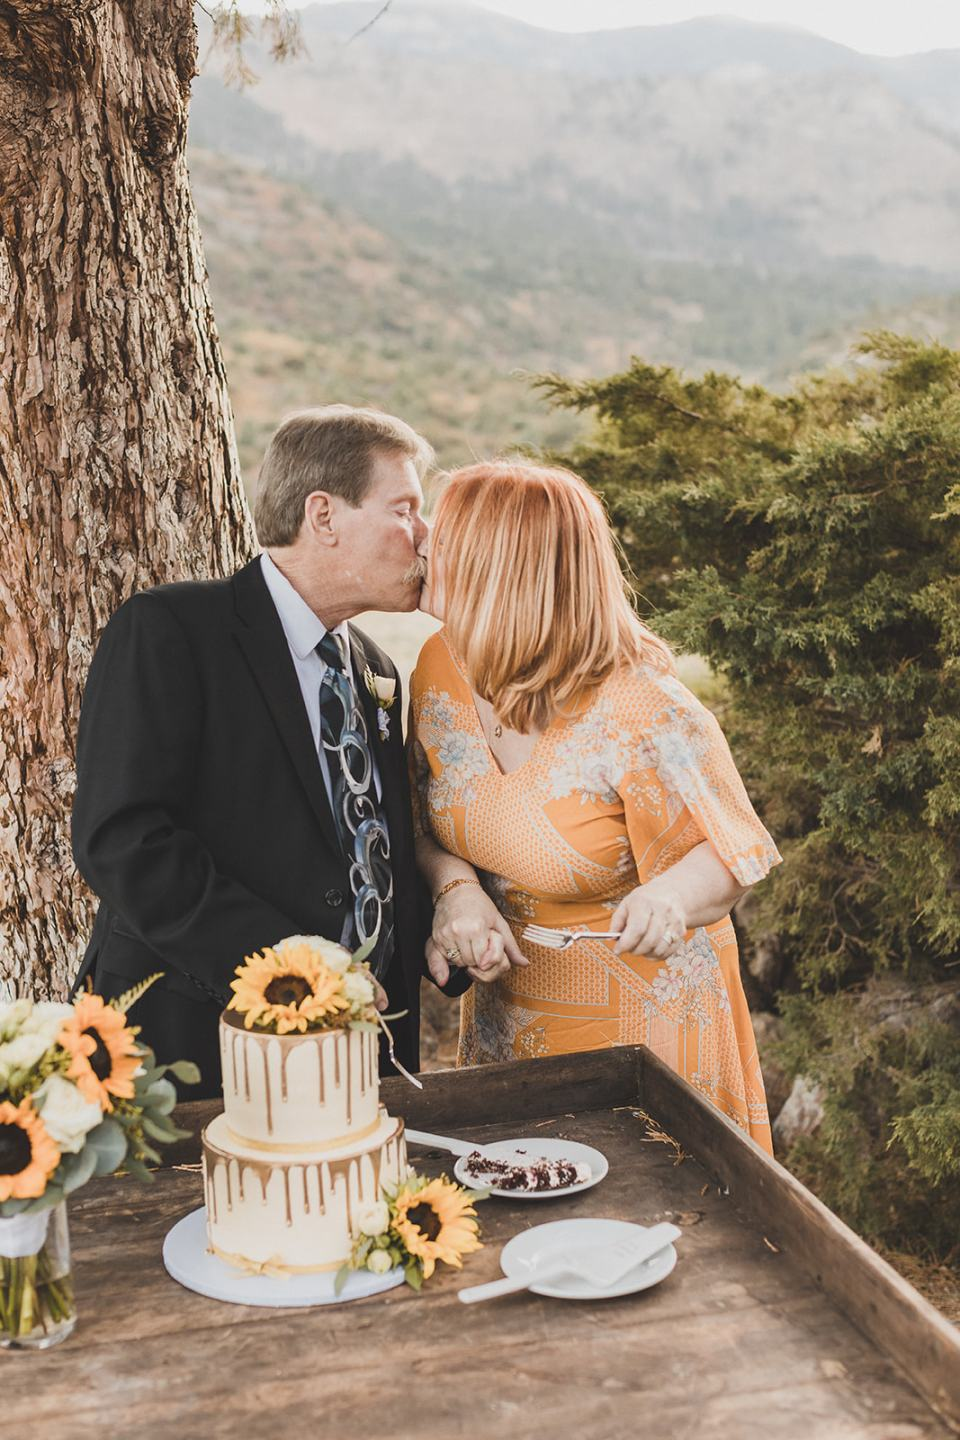 newlyweds cut wedding cake with sunflower topper